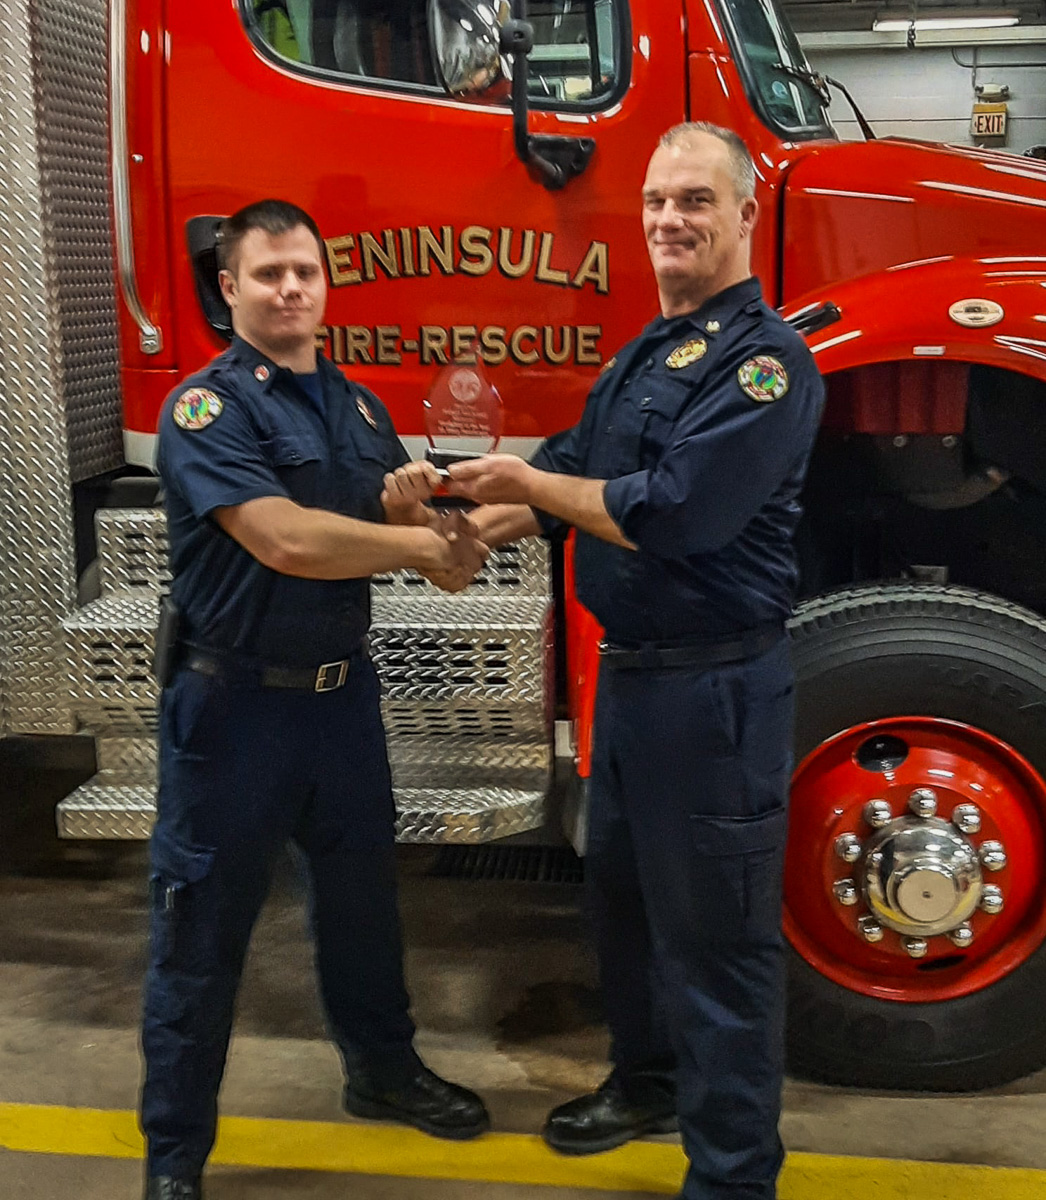 Peninsula Township Fire Department's Lt. Ethan Passalacqua receives the Firefighter of the Year Award from Fire Chief Fred Gilstorff | Fire Department Photo